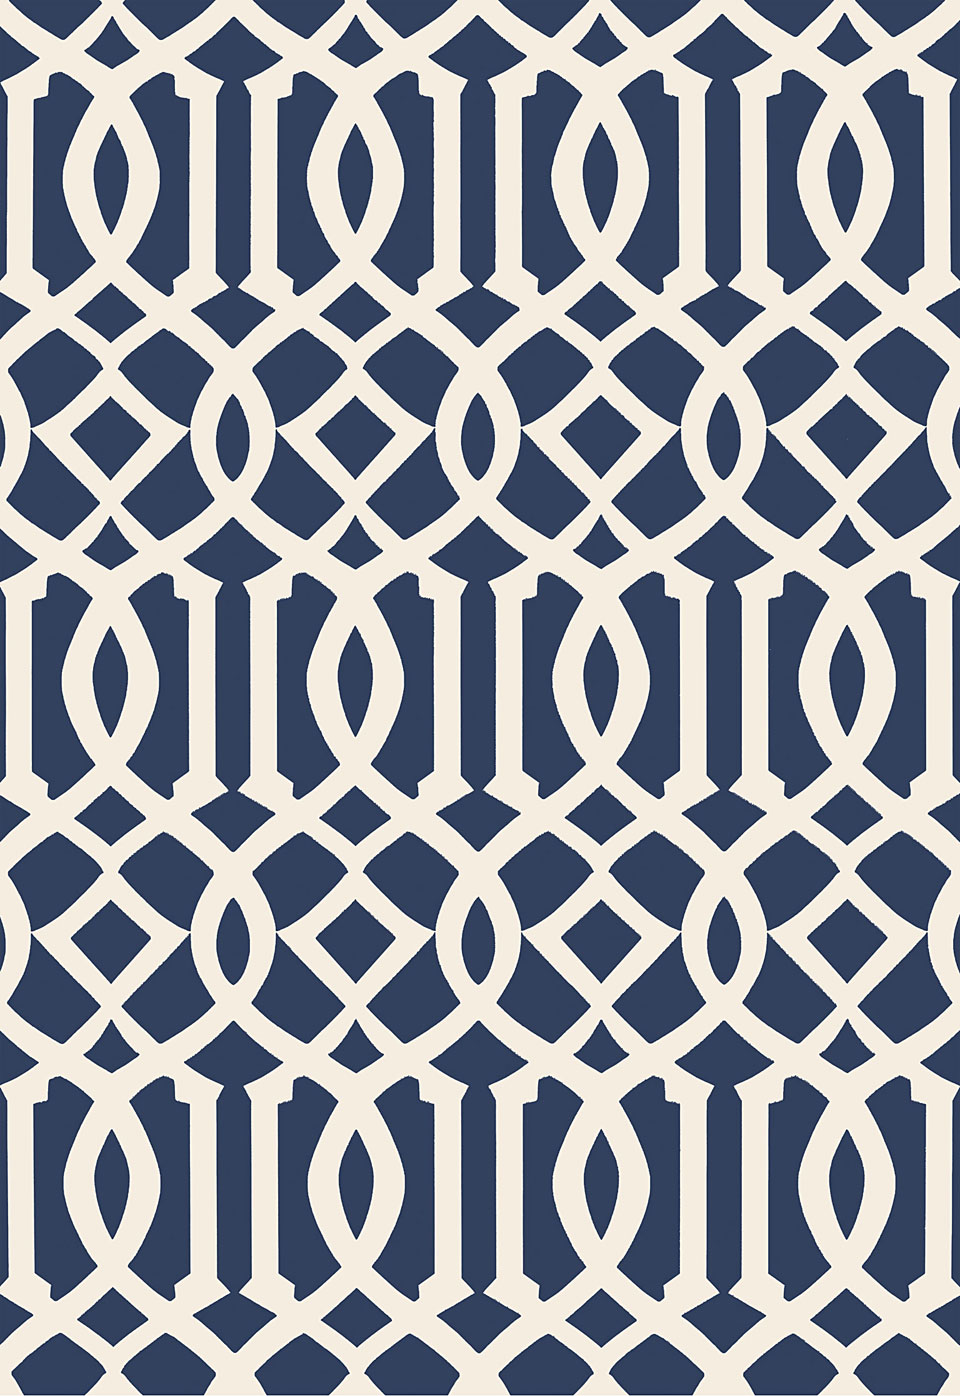 imperial trellis   finest wallpaper 960x1396